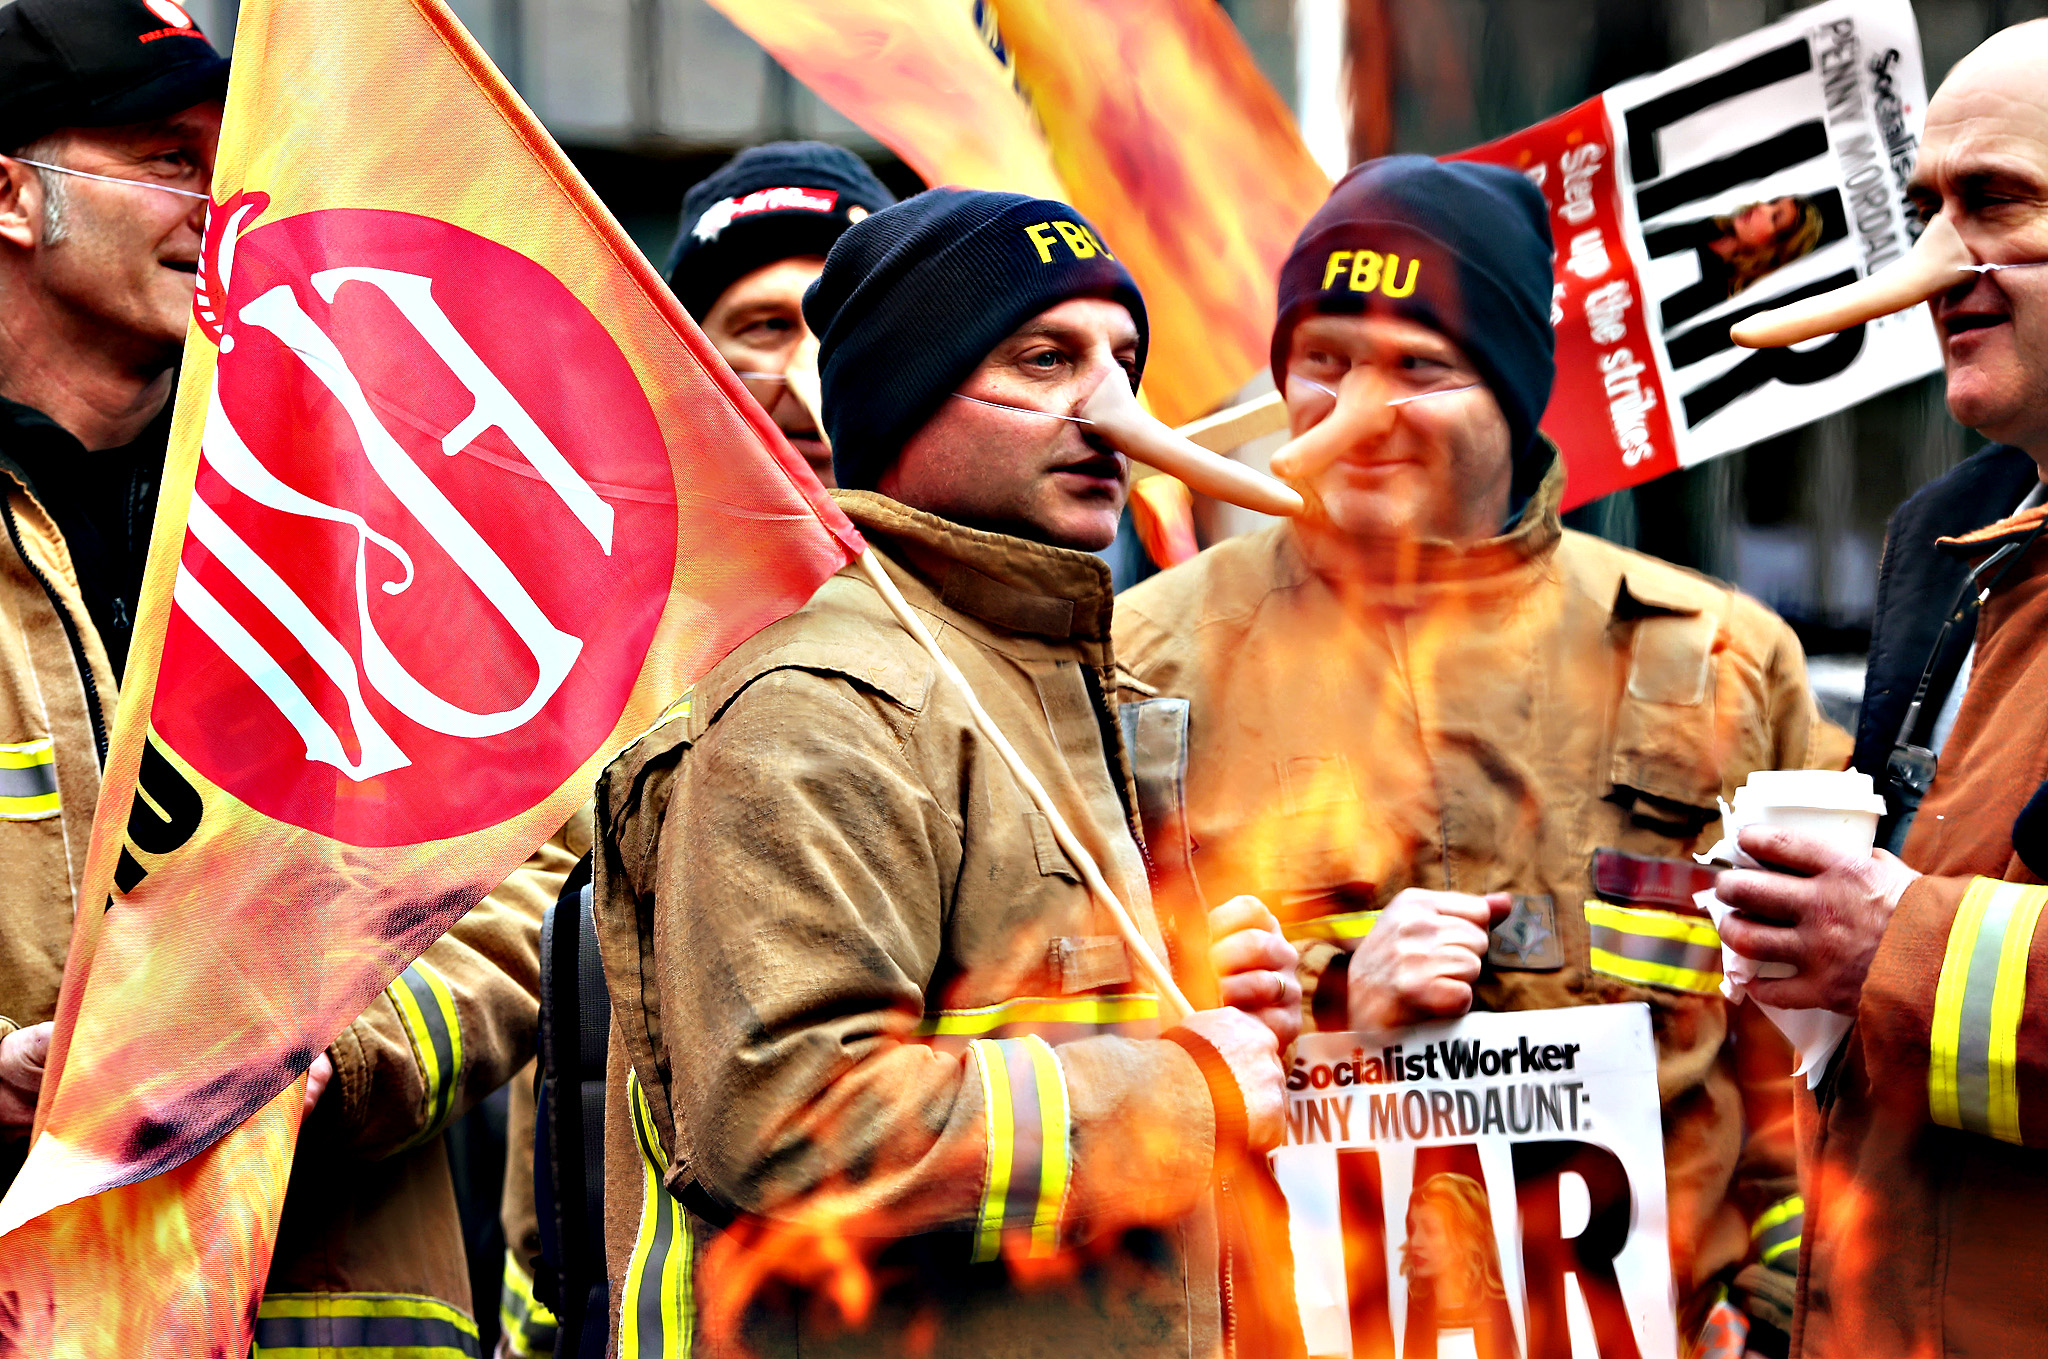 Firefighters protest during a 24 hour strike outside Methodist Central Hall Westminster on February 25, 2015 in London, England. Firefighters across the country are parcipitating in the strike over changes to their pensions.